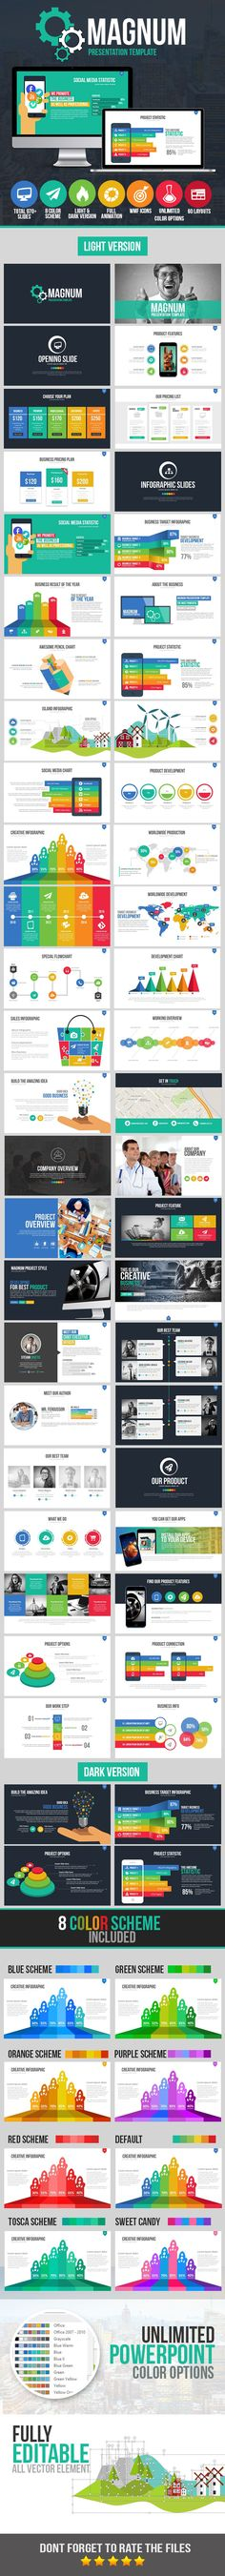 Eco Business Presentation Template 10527727 Presentation - business presentation template